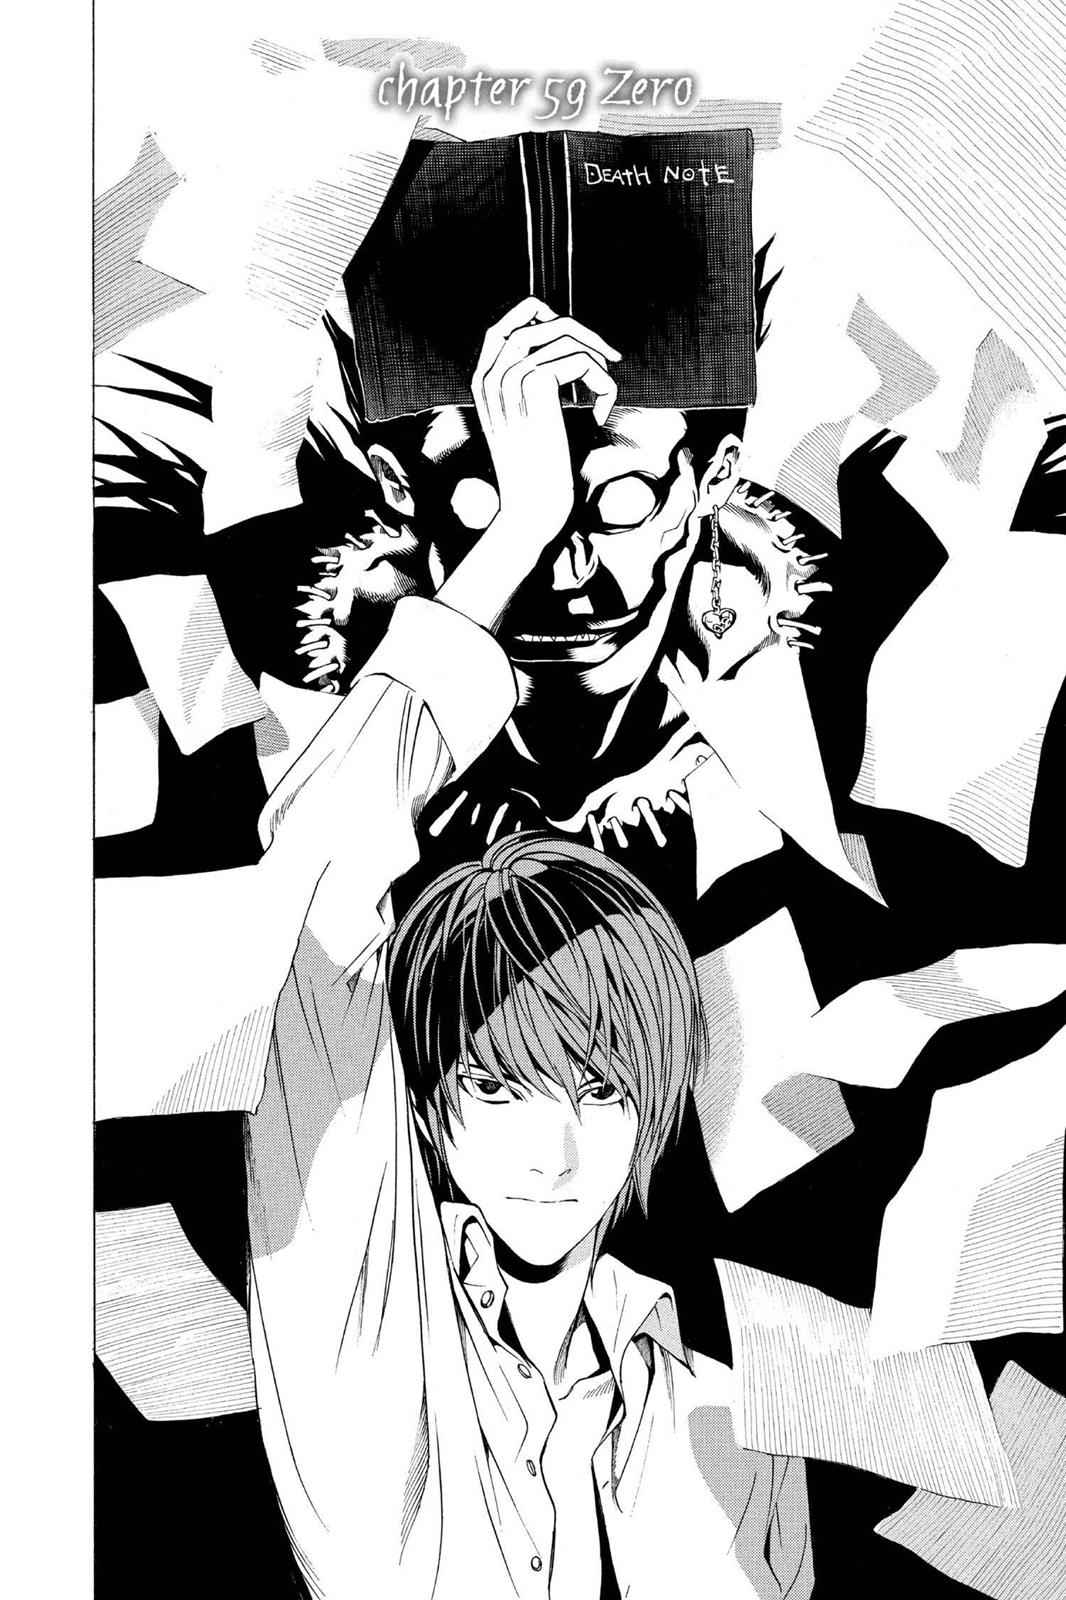 Death Note Chapter 59 Page 2